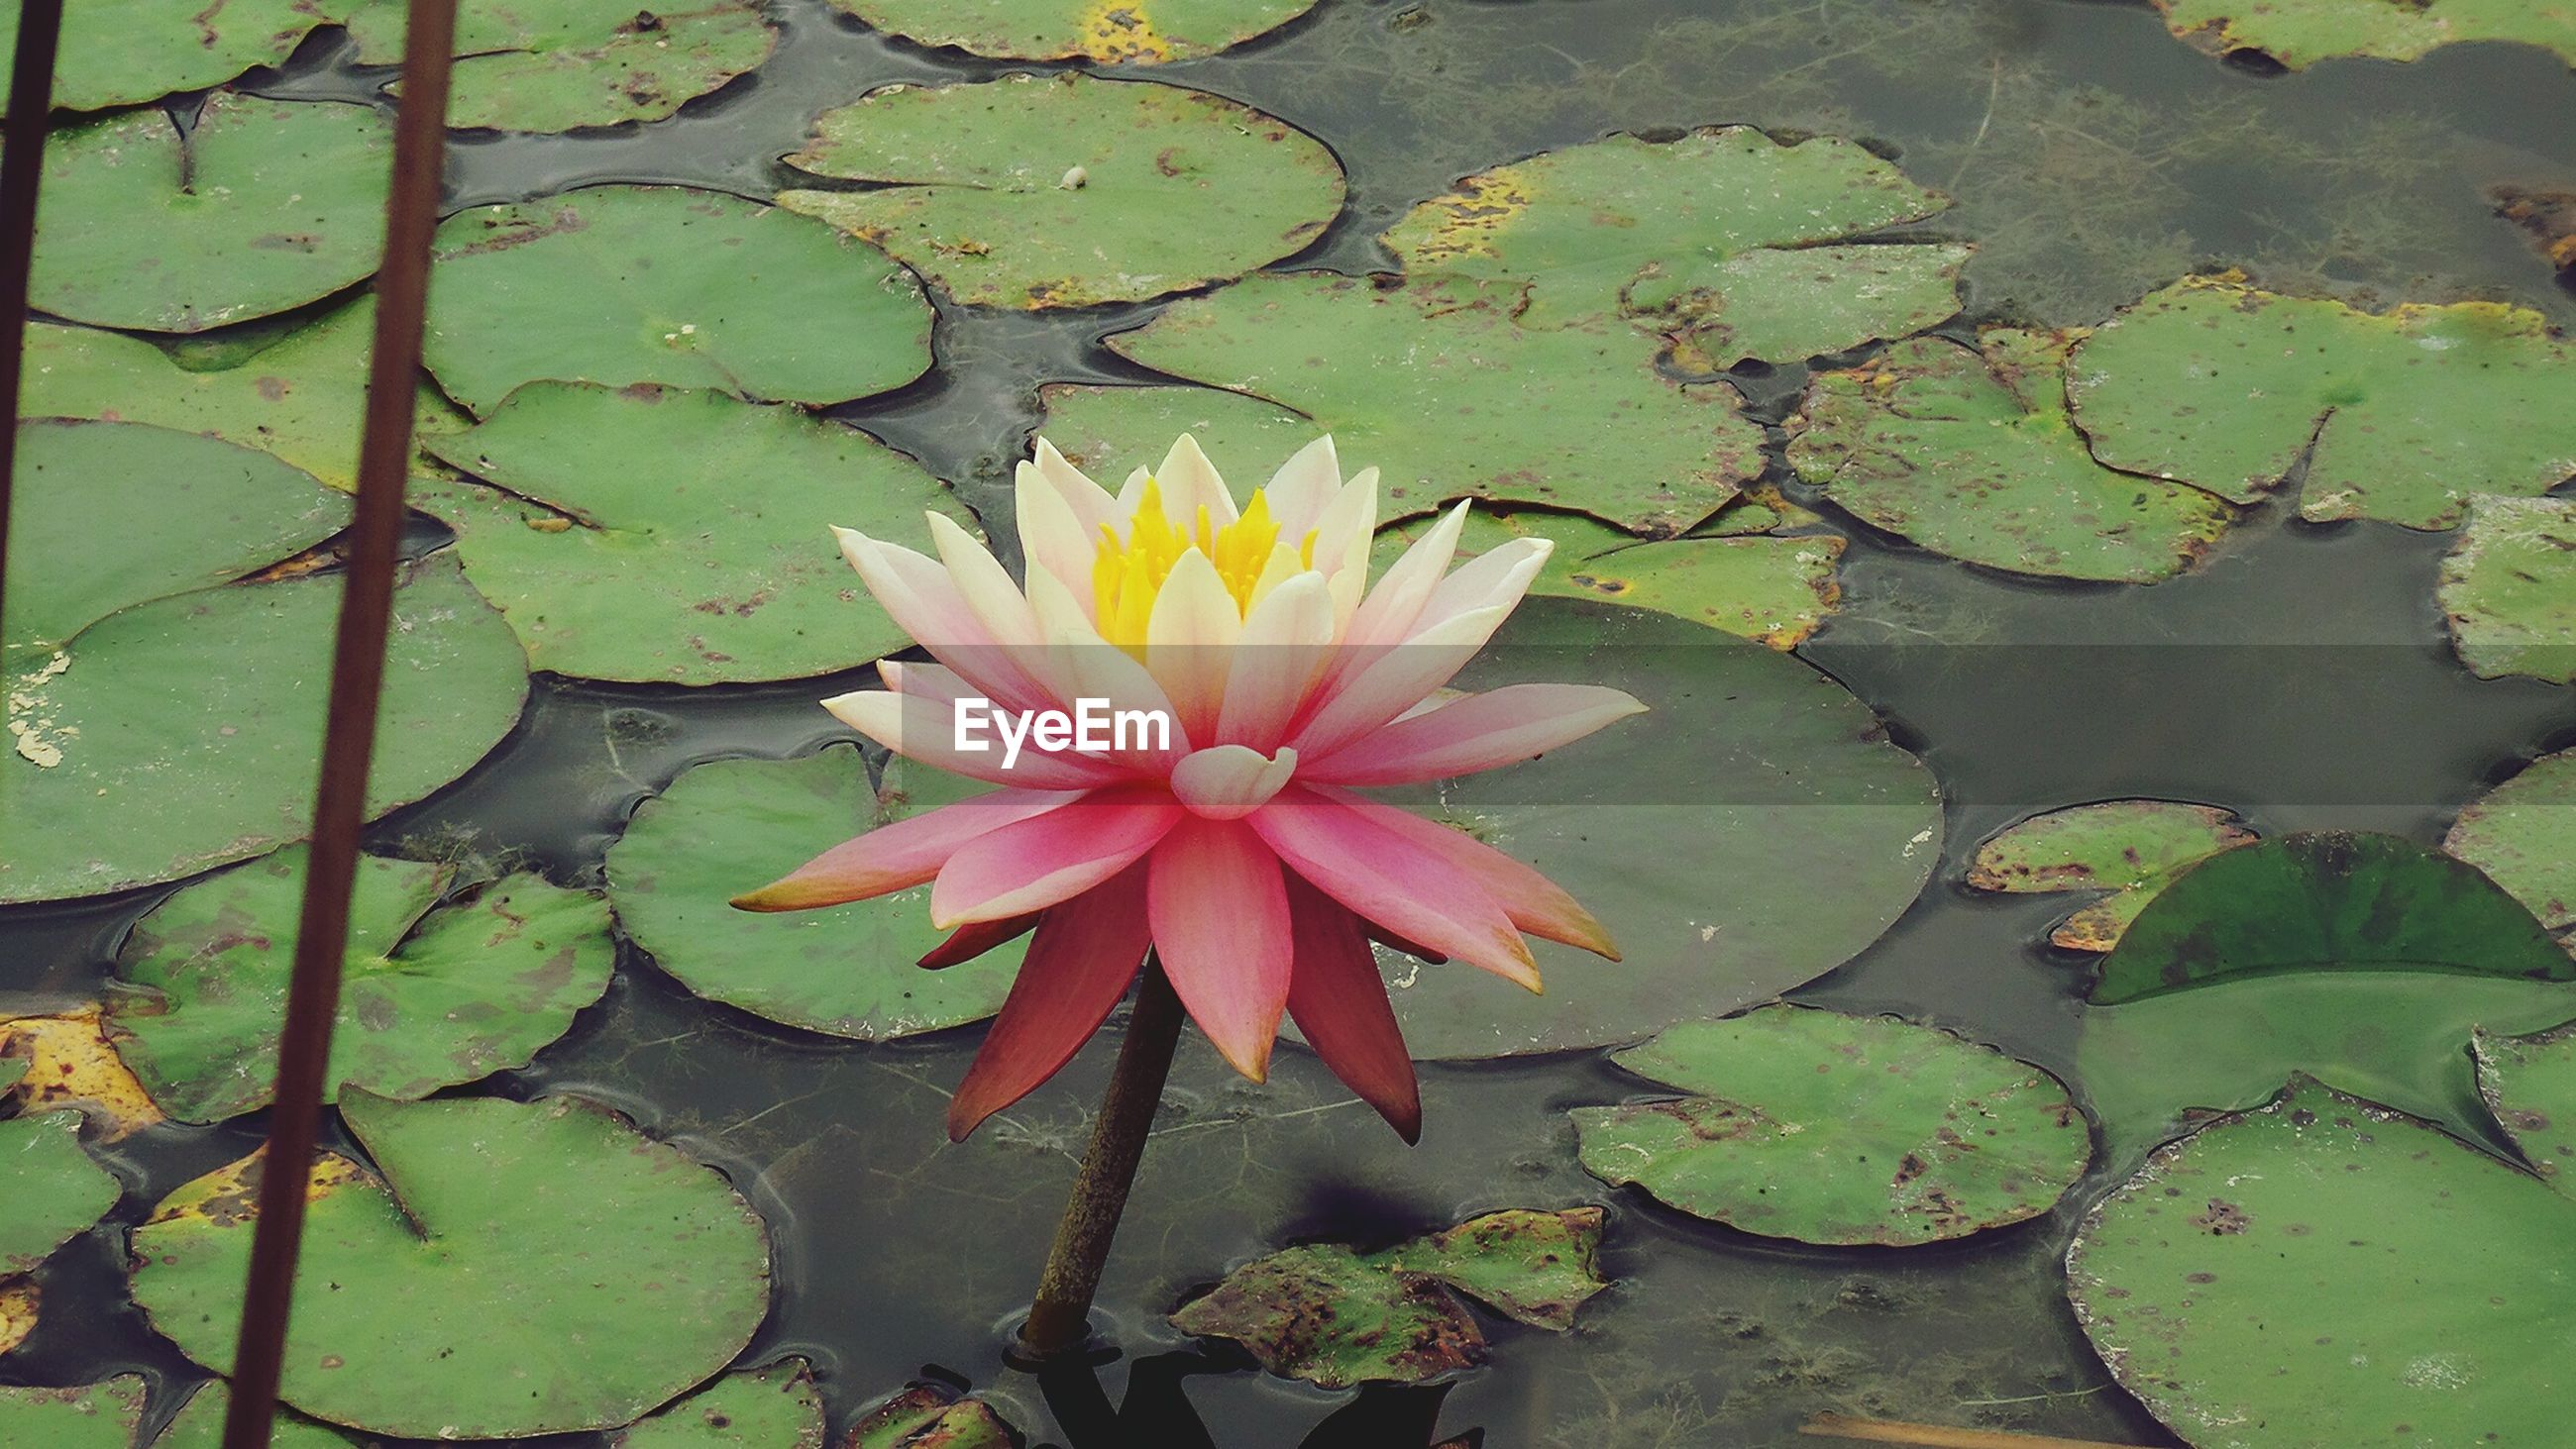 flower, fragility, petal, water, leaf, nature, growth, flower head, beauty in nature, freshness, floating on water, plant, lotus water lily, water lily, no people, wet, blooming, outdoors, pink color, lily pad, close-up, day, raindrop